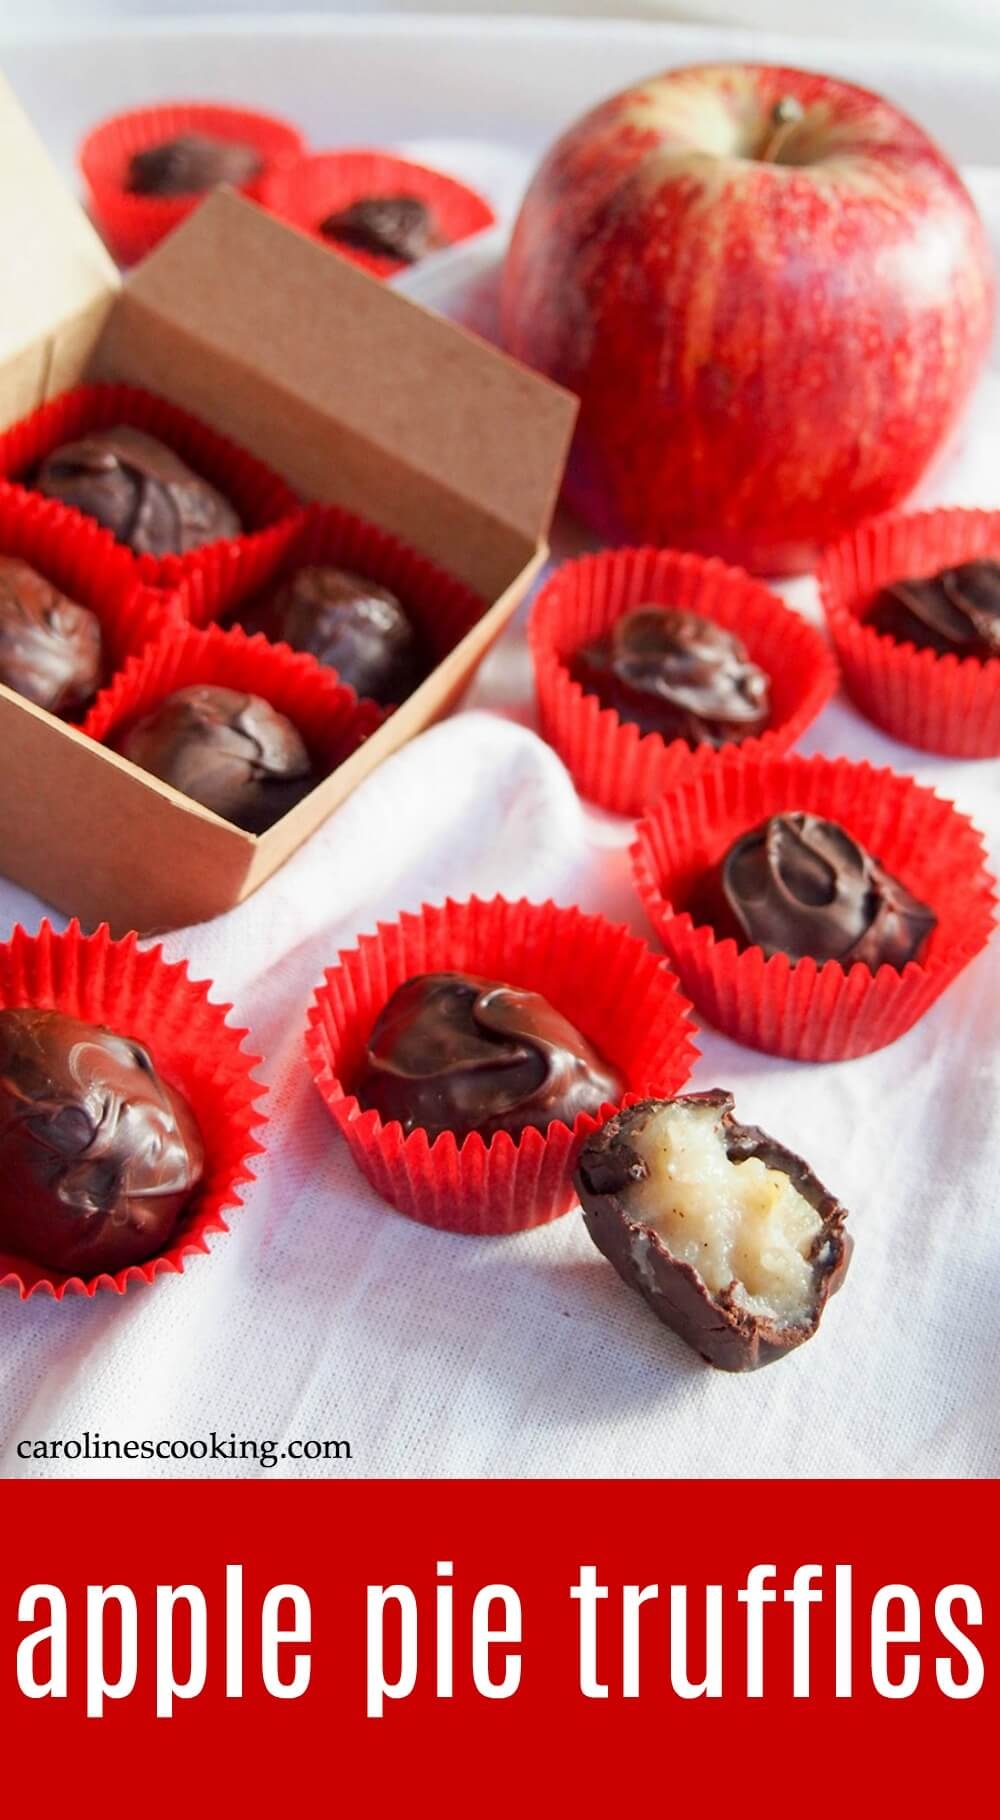 These apple pie truffles are a wonderful fall, or anytime treat. With a delicate apple flavor, they're soft, sweet, rich and delicious! Great for gifting as well. #truffle #homemadechocolate #appleweek